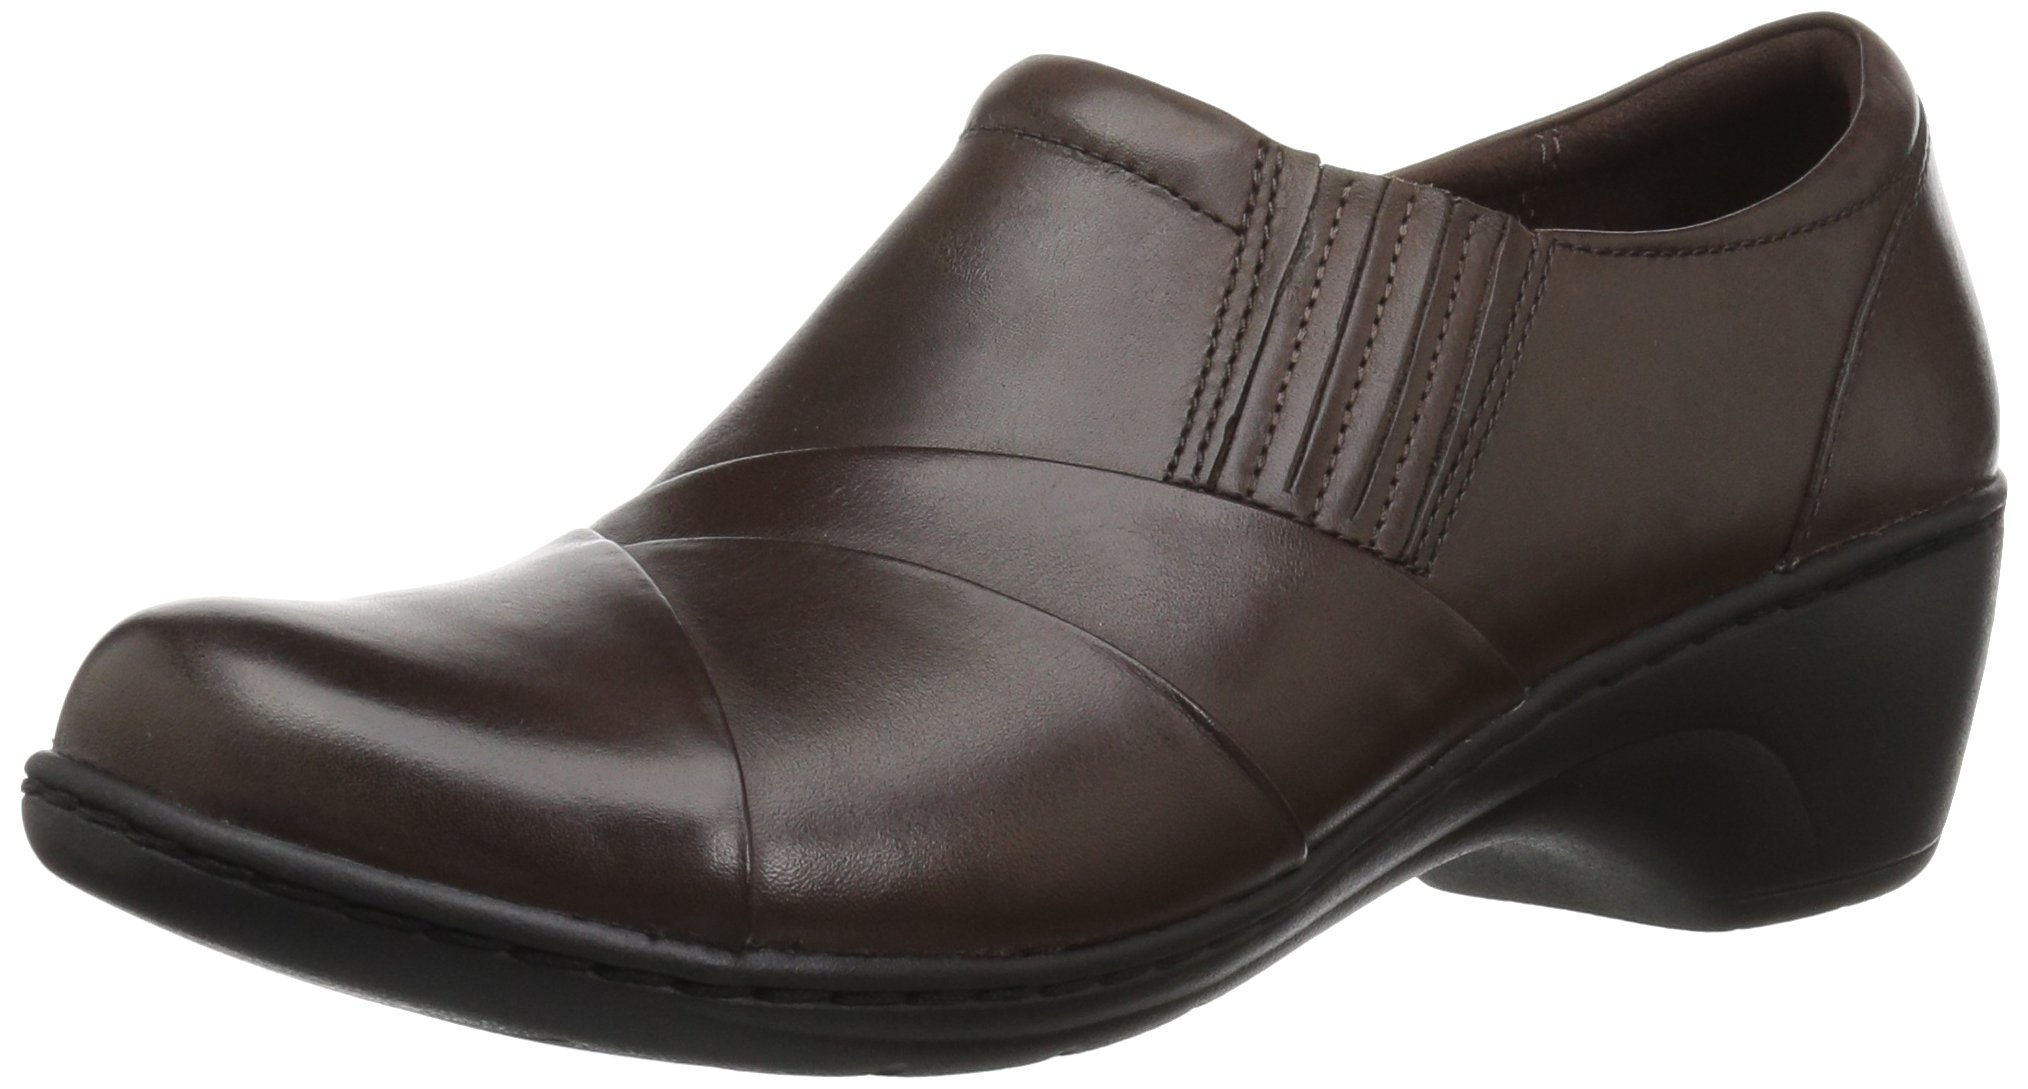 Clarks Women's Channing Essa Slip-On Loafer